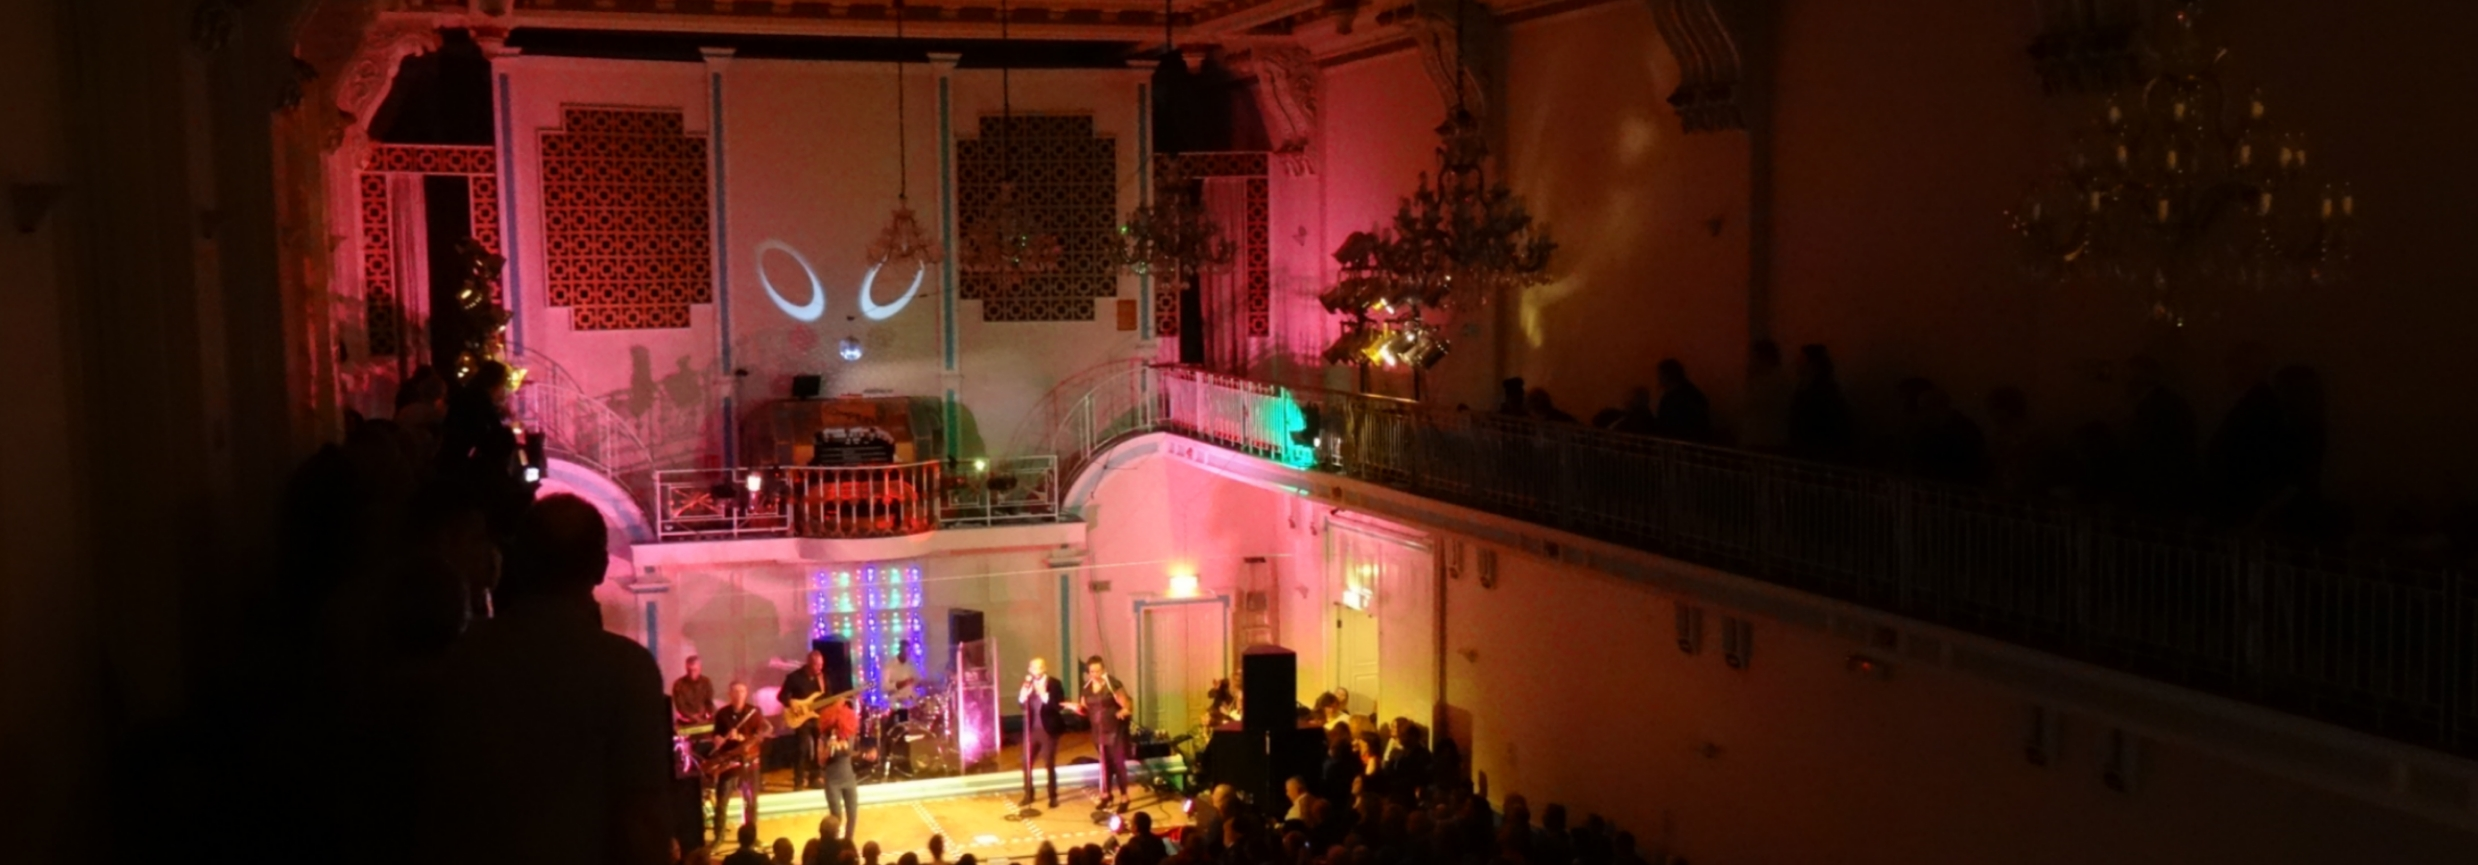 live concerts at Louth Town Hall